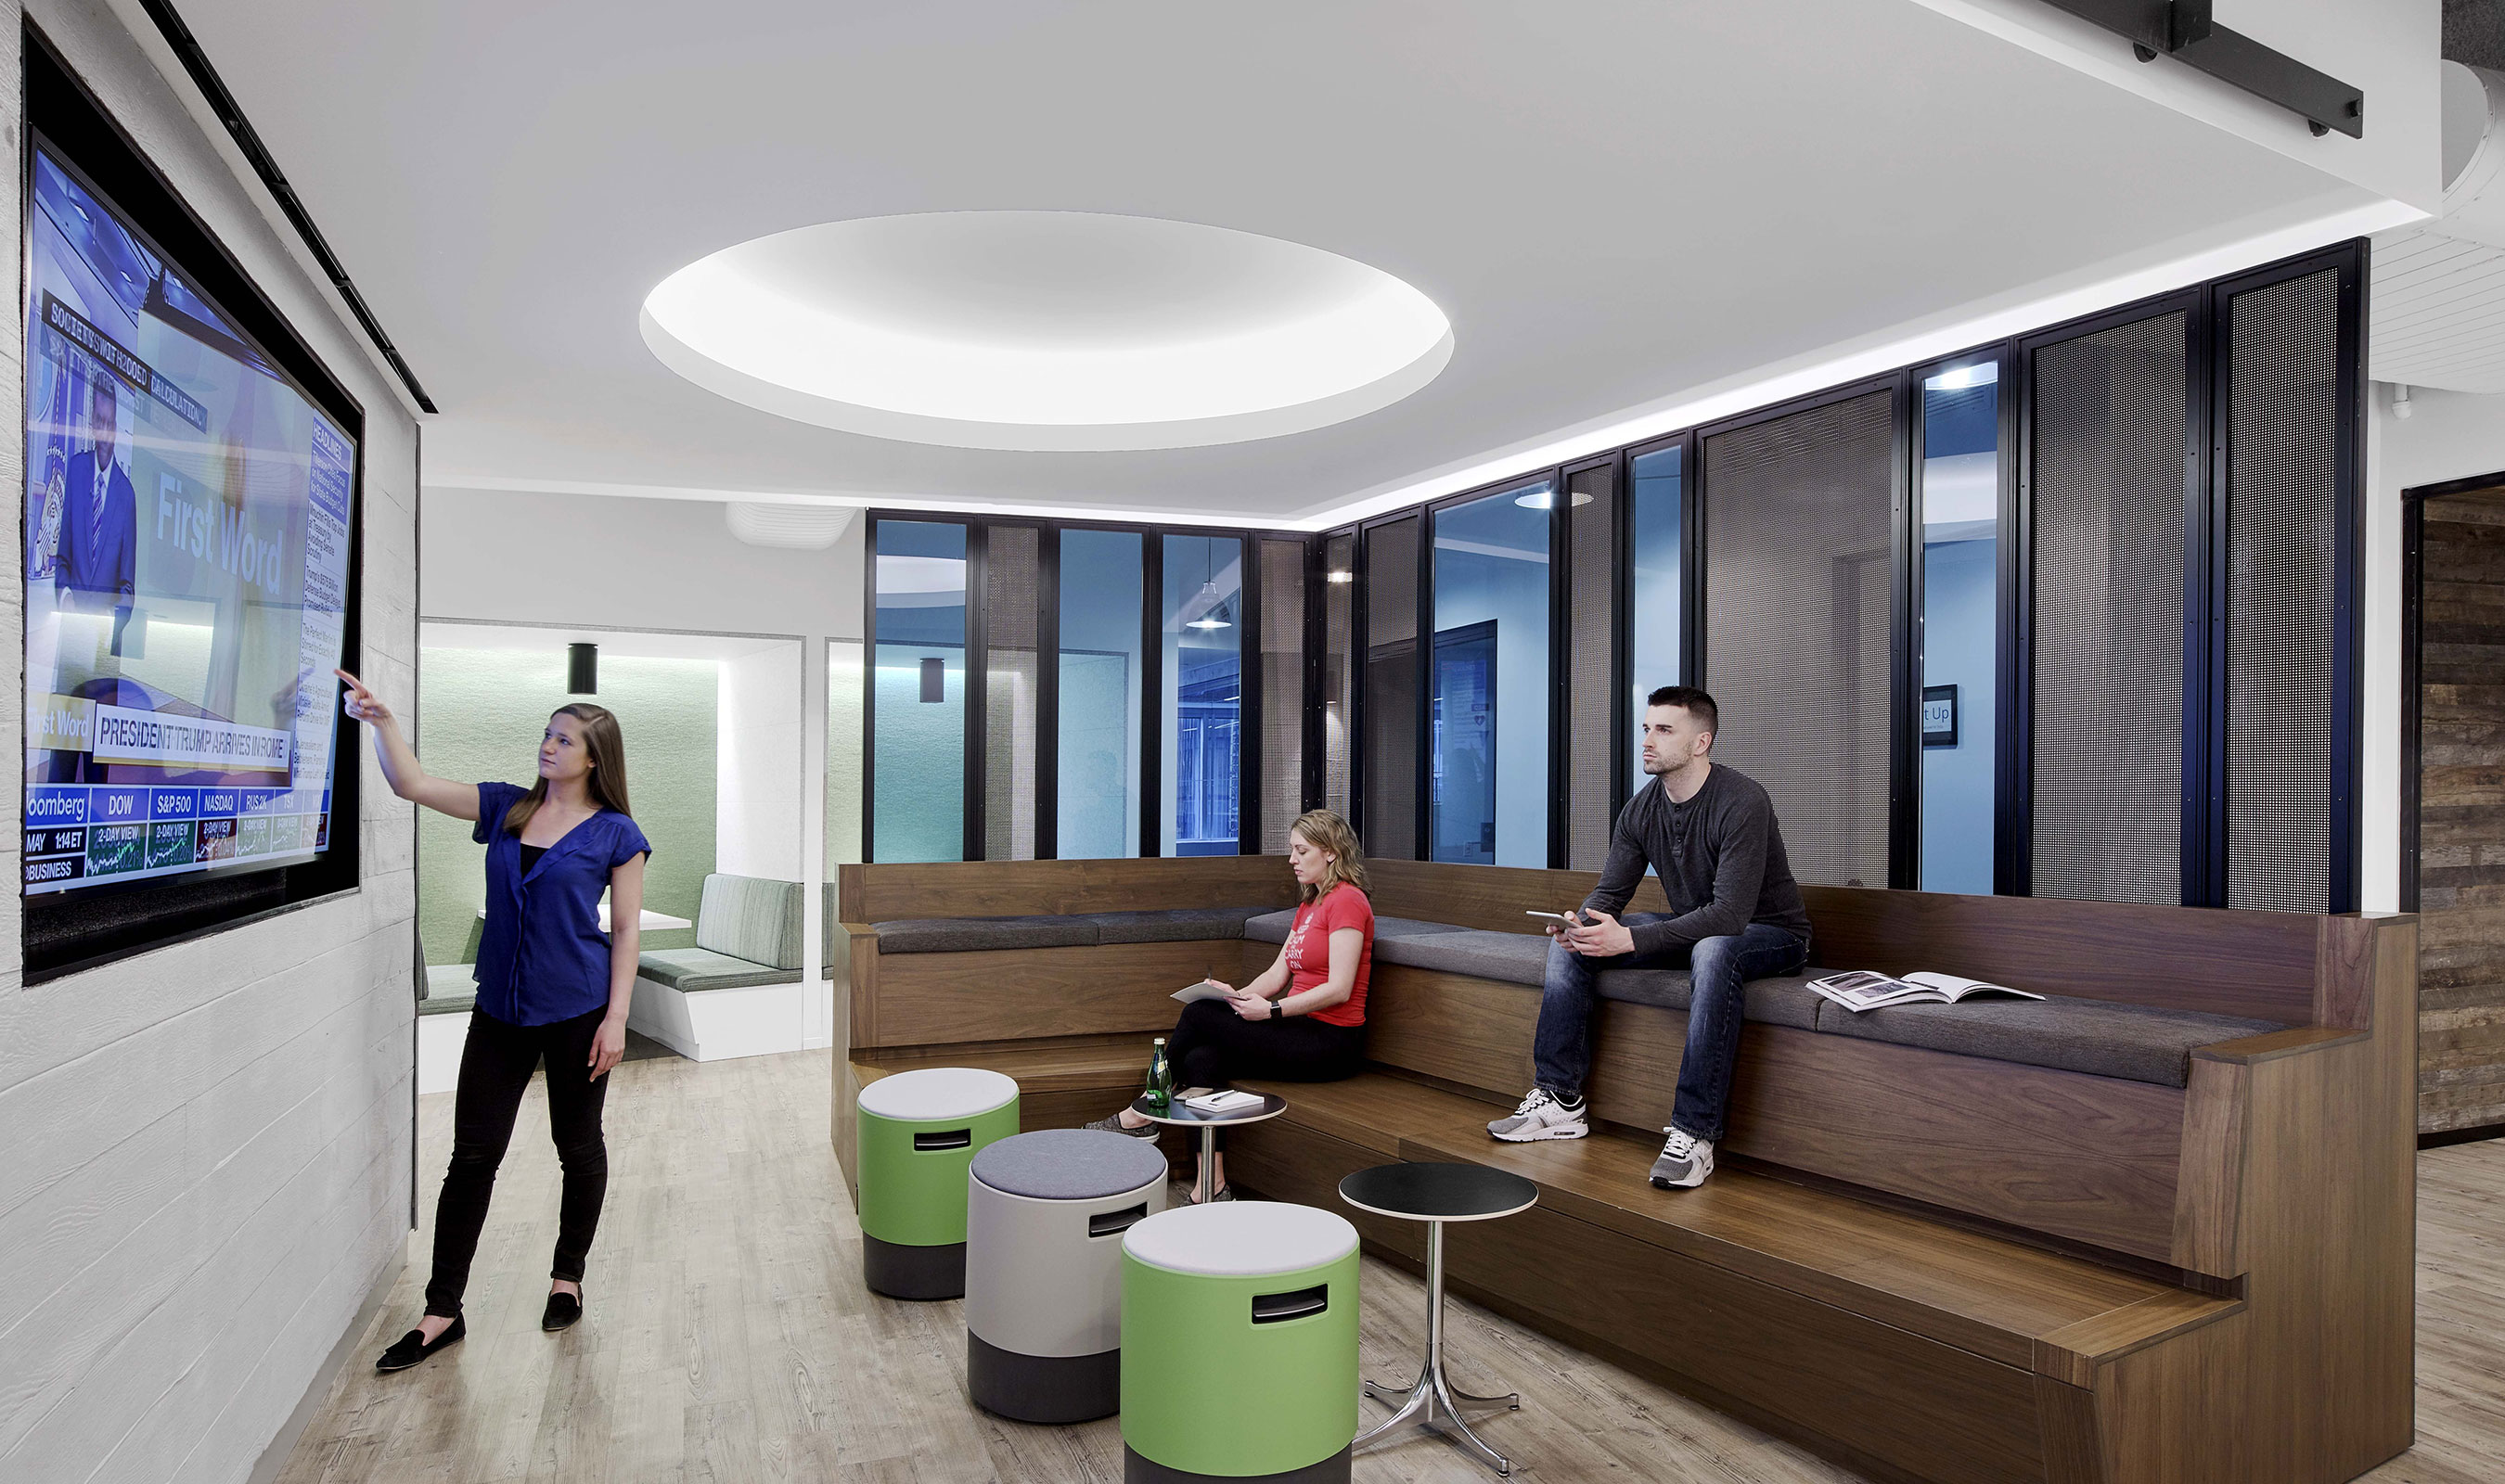 A prominent industrial-inspired design element — used throughout the hallways, breakout areas and meeting spaces —  was crafted from Banker Wire's S-12 architectural wire mesh.